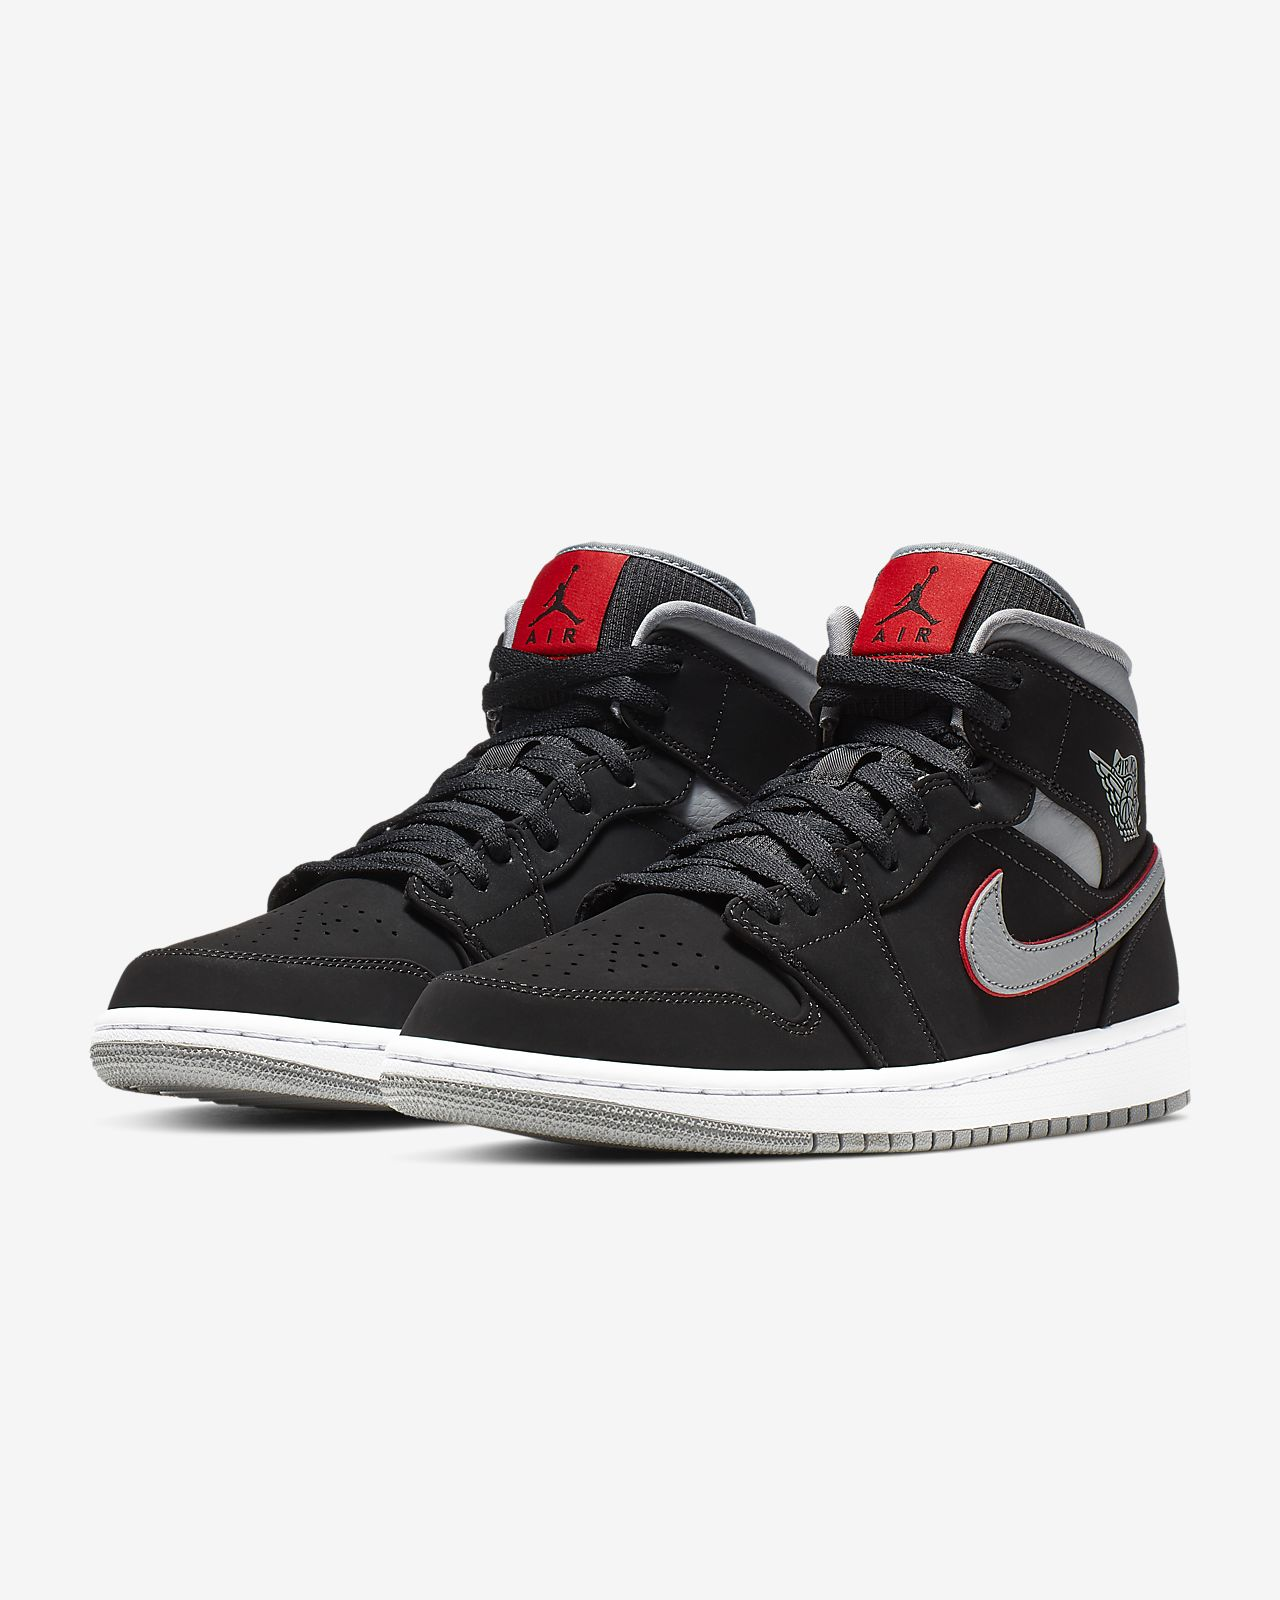 sale retailer 15f97 e8a12 Air Jordan 1 Mid Men's Shoe. Nike.com ZA